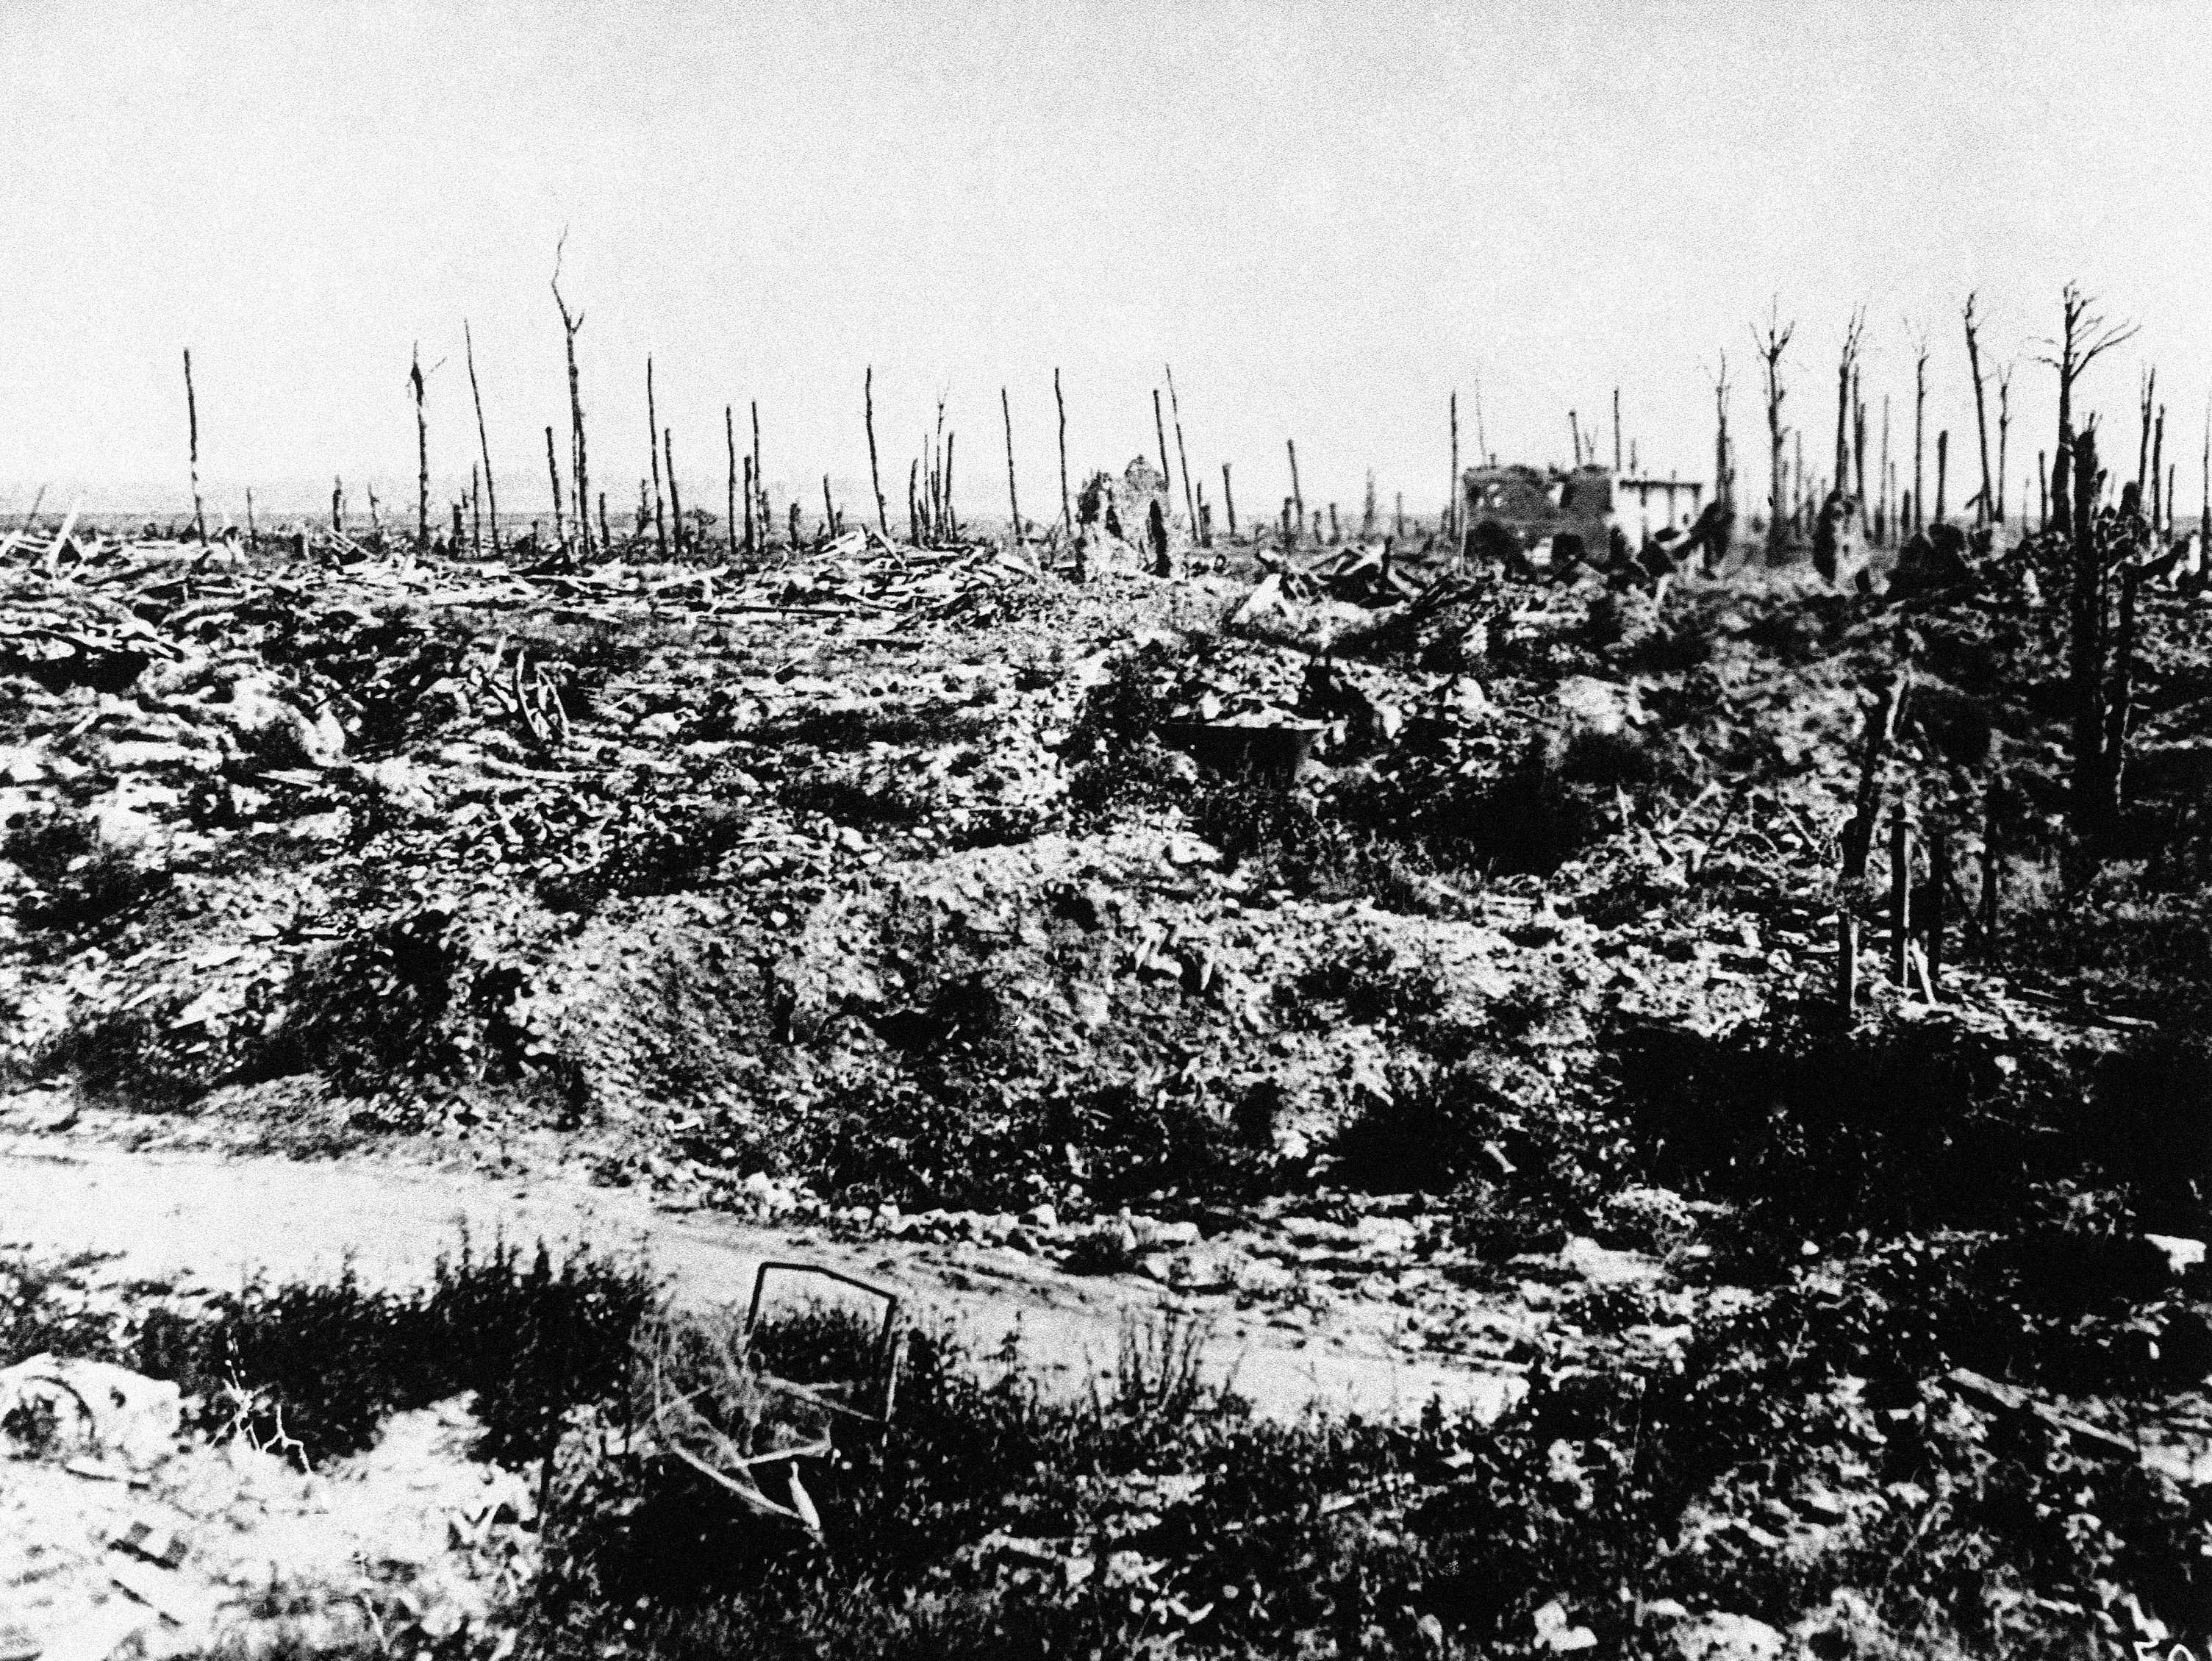 16 OF 100: In this undated file photo, France's battle torn Marne district is reduced to rubble and mud during World War I.